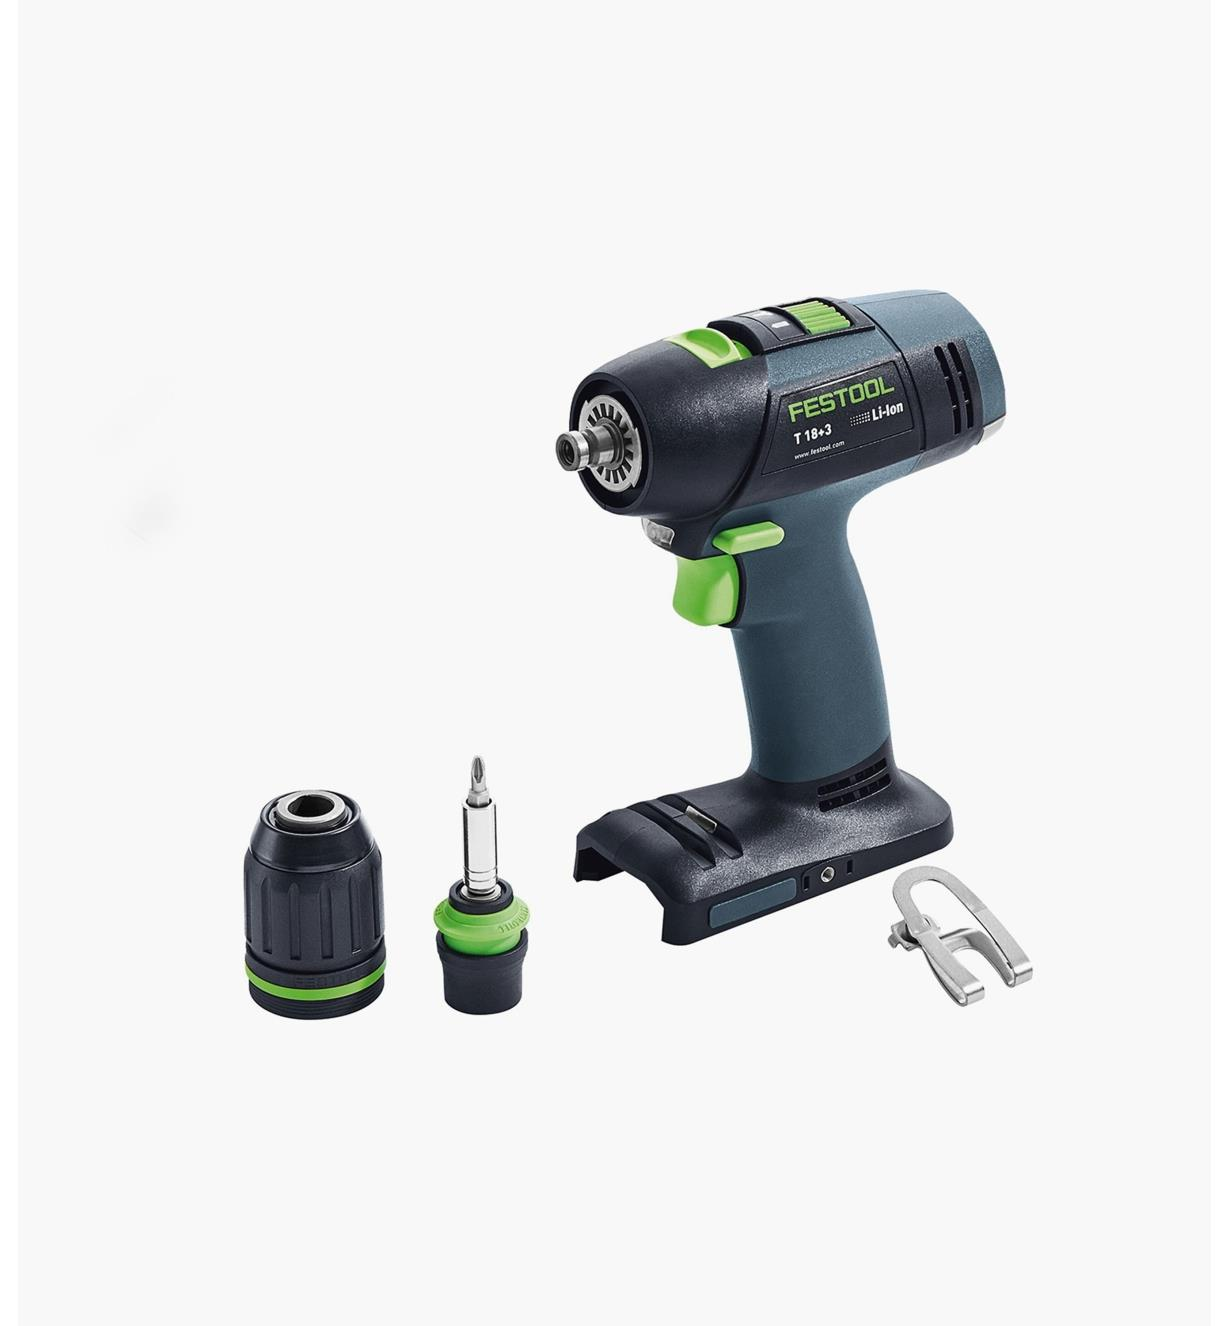 ZC576451 - Perceuse-visseuse sans fil de base T 18+3 Festool